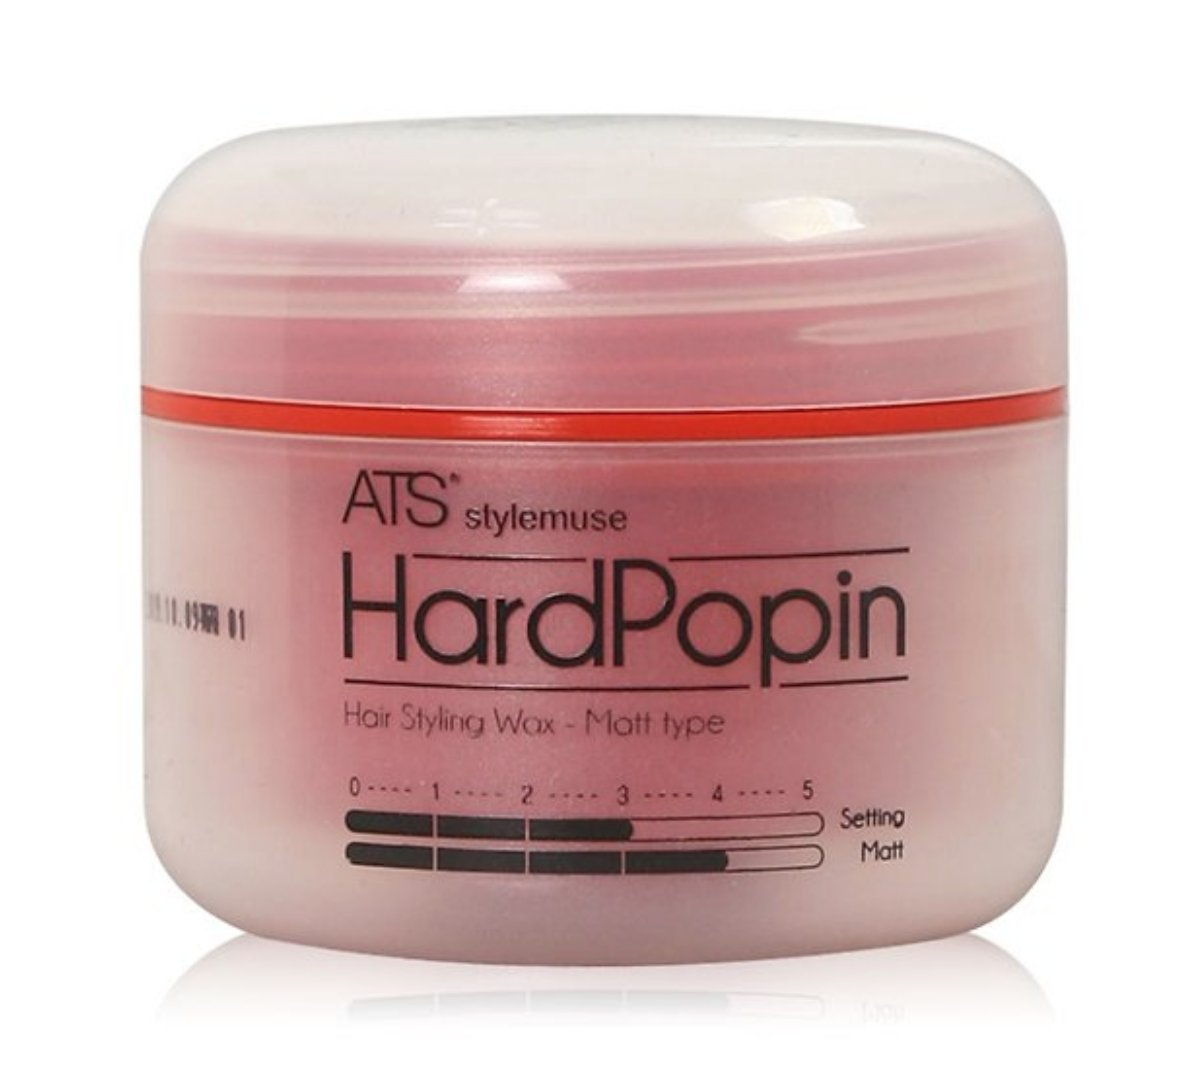 ATS STYLEMUSE HARD POPIN STYLING WAX - Men's and Women's Hair Styling Product Matte Wax Molding Cream Paste Pomade Sculpting Forming Texturizer Putty, Super Strong Hold, Earth Friendly, 100g 3.52oz